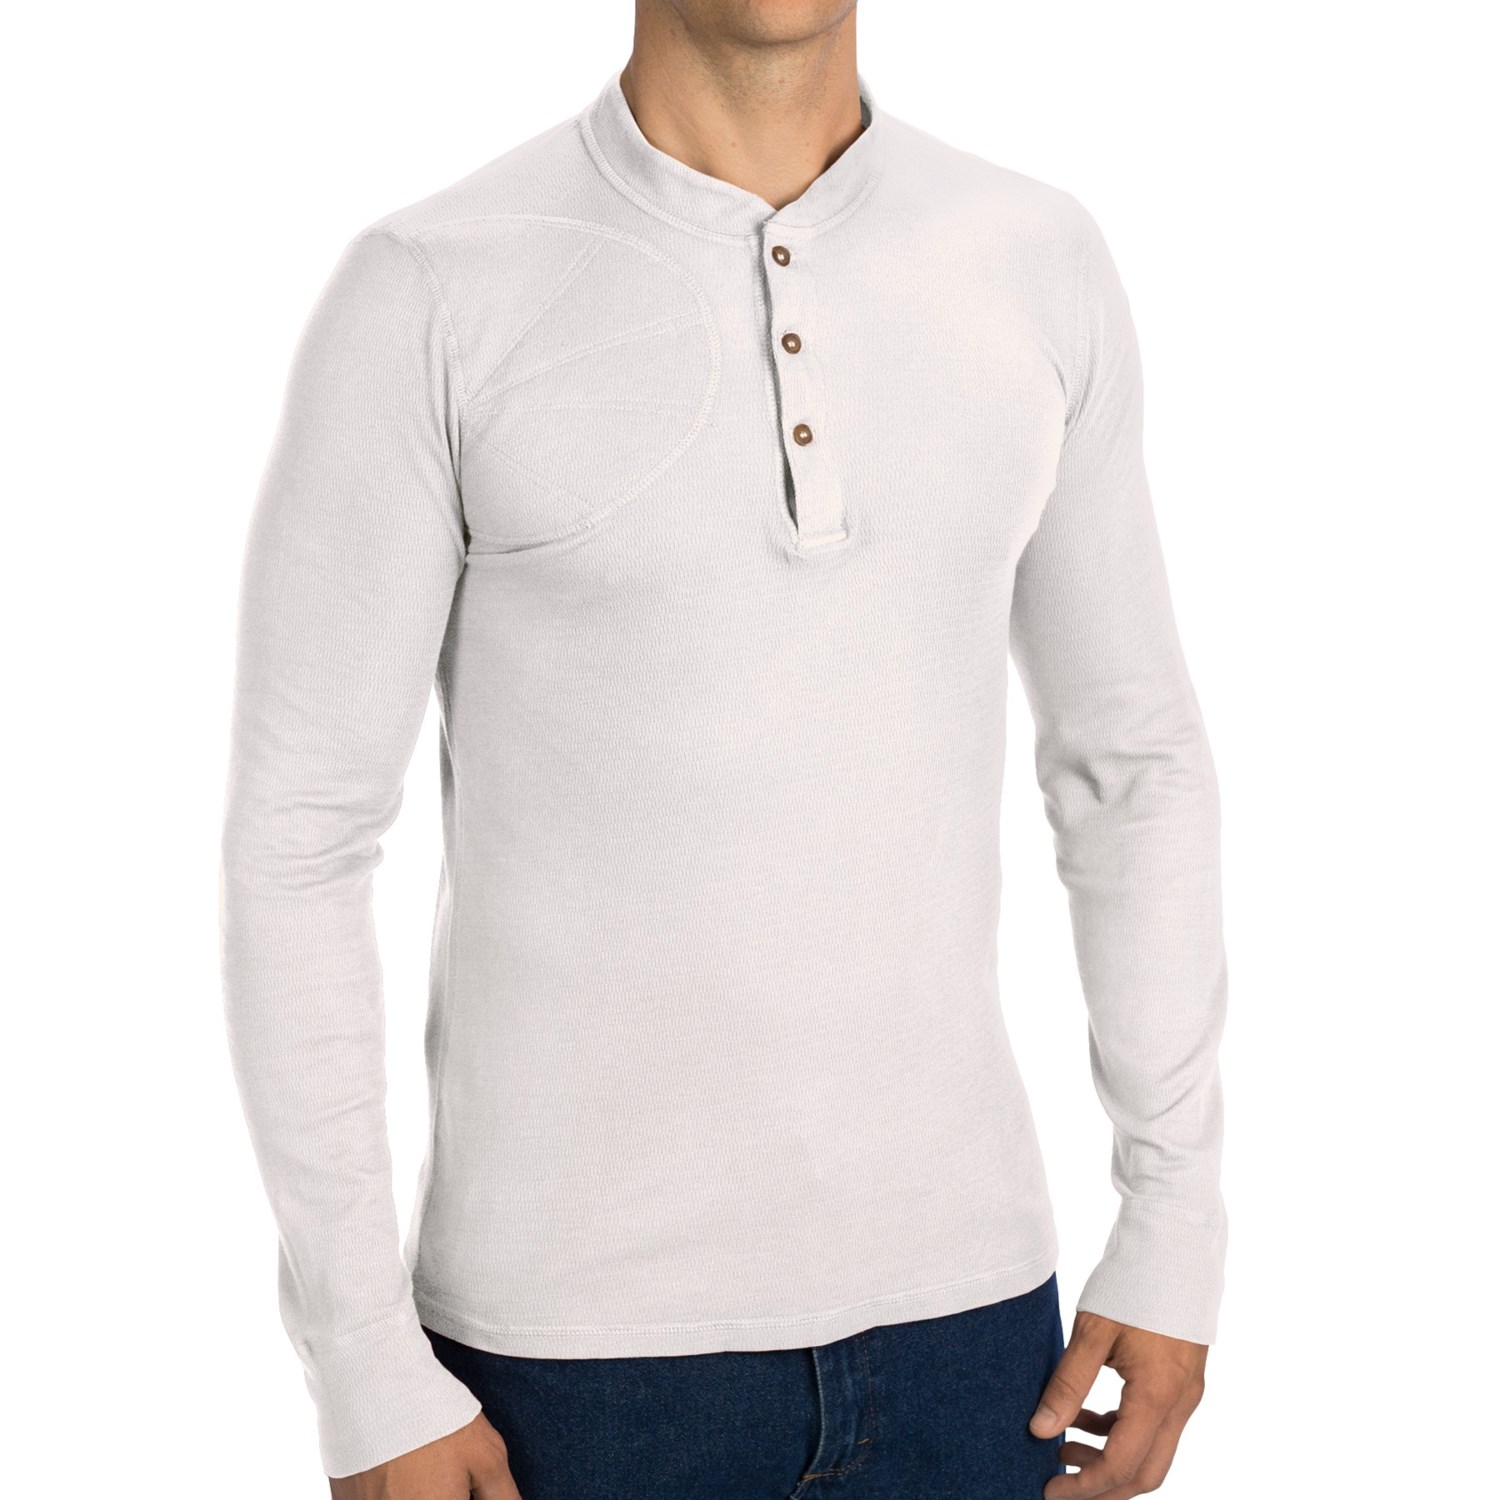 A raglan thermal shirt with contrasting sleeves can be worn under another shirt but also looks great when worn alone because of the classic sleeve shaping. Choose a lightweight cotton/poly version and wear it with slacks or cargos for any occasion that calls for something nicer than a pair of jeans.